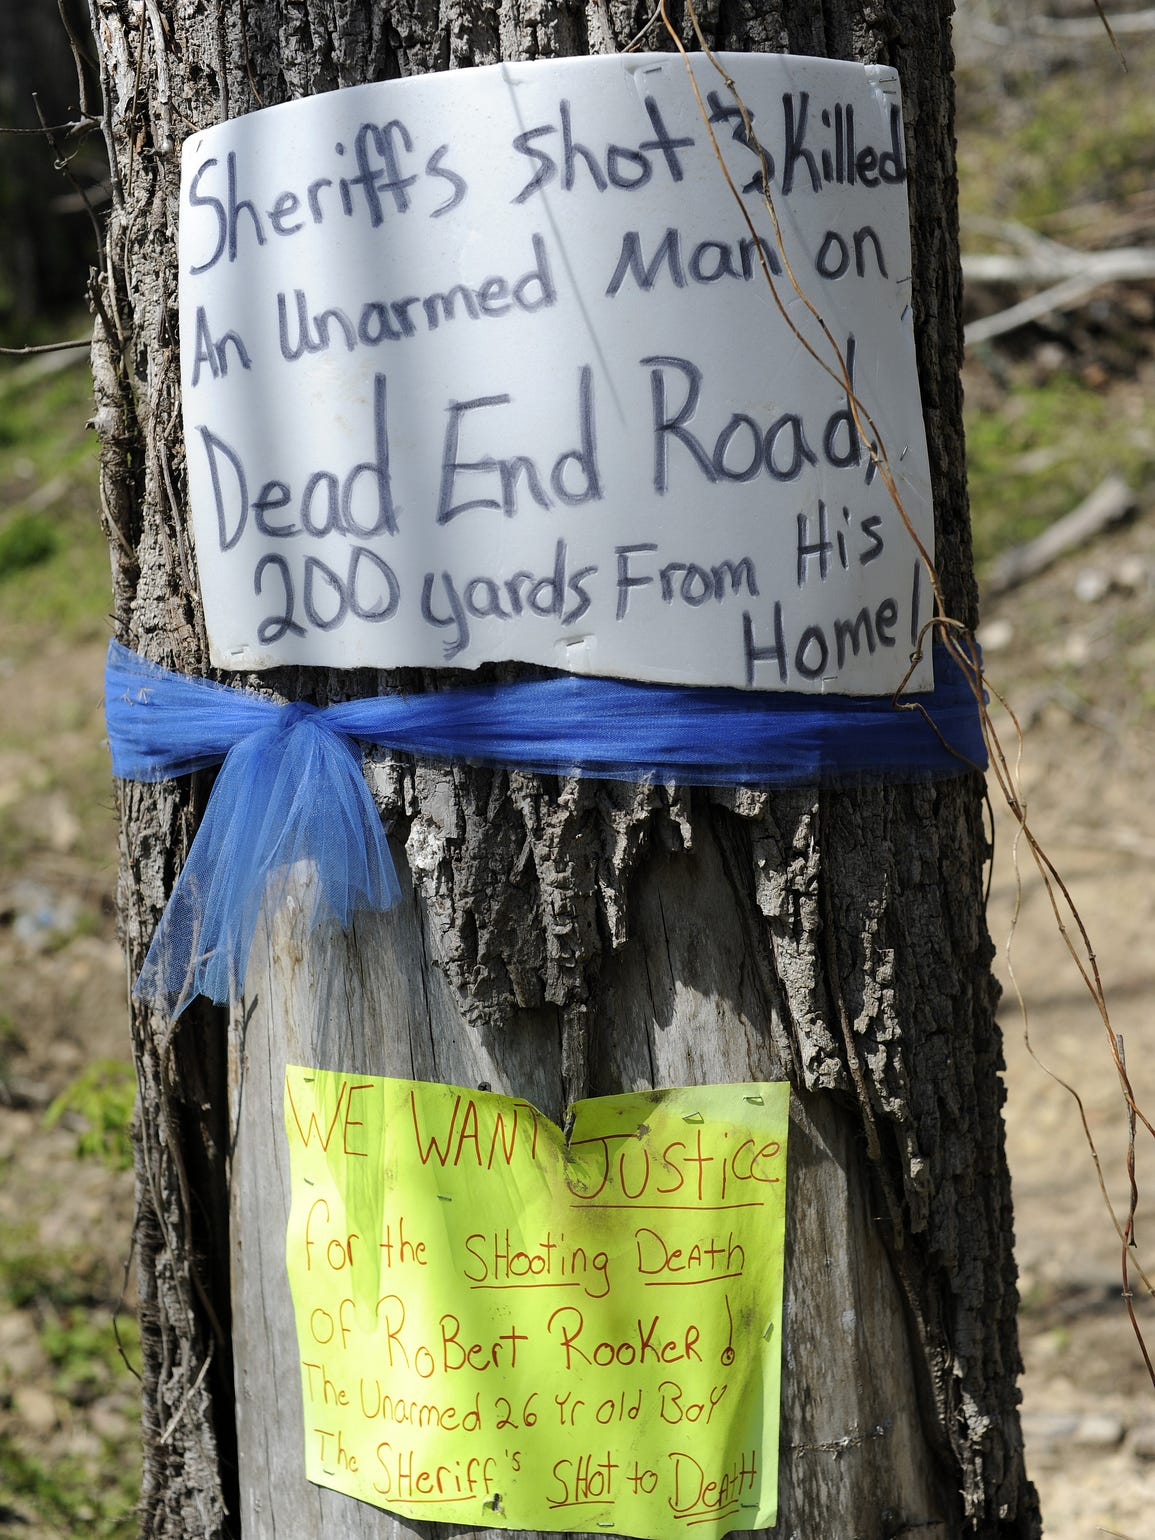 In April 2015, signs lined the road where a police